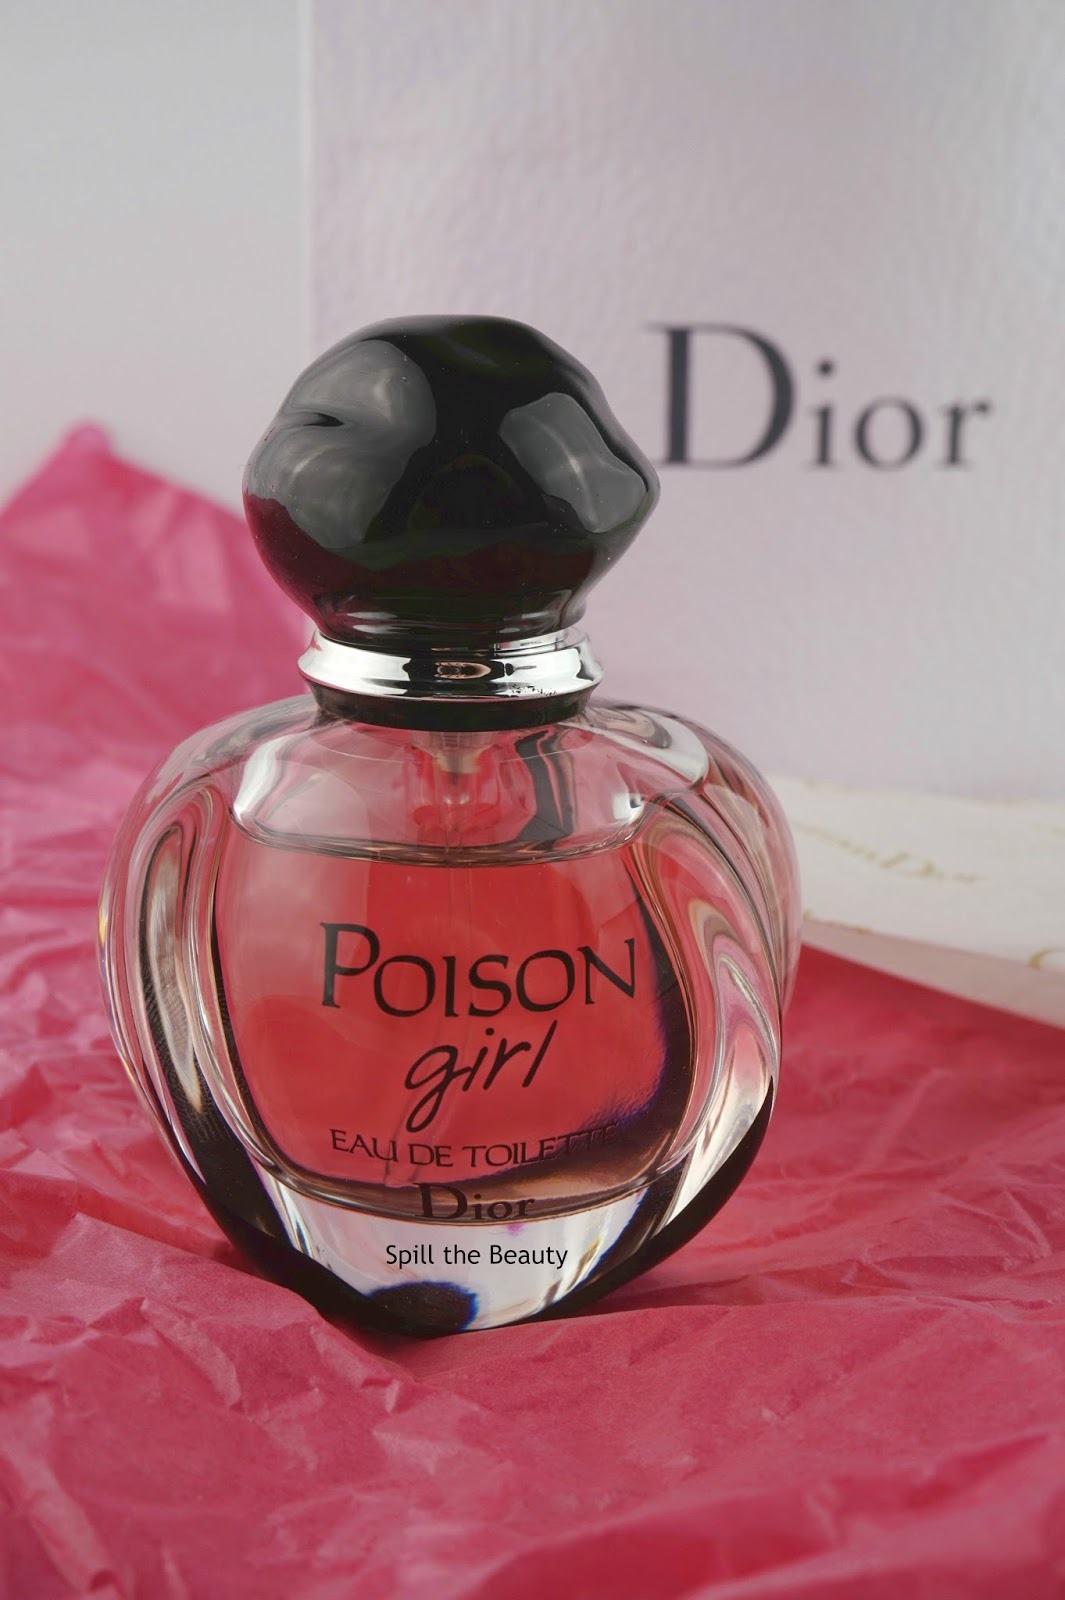 dior poison girl eau de toilette perfume review